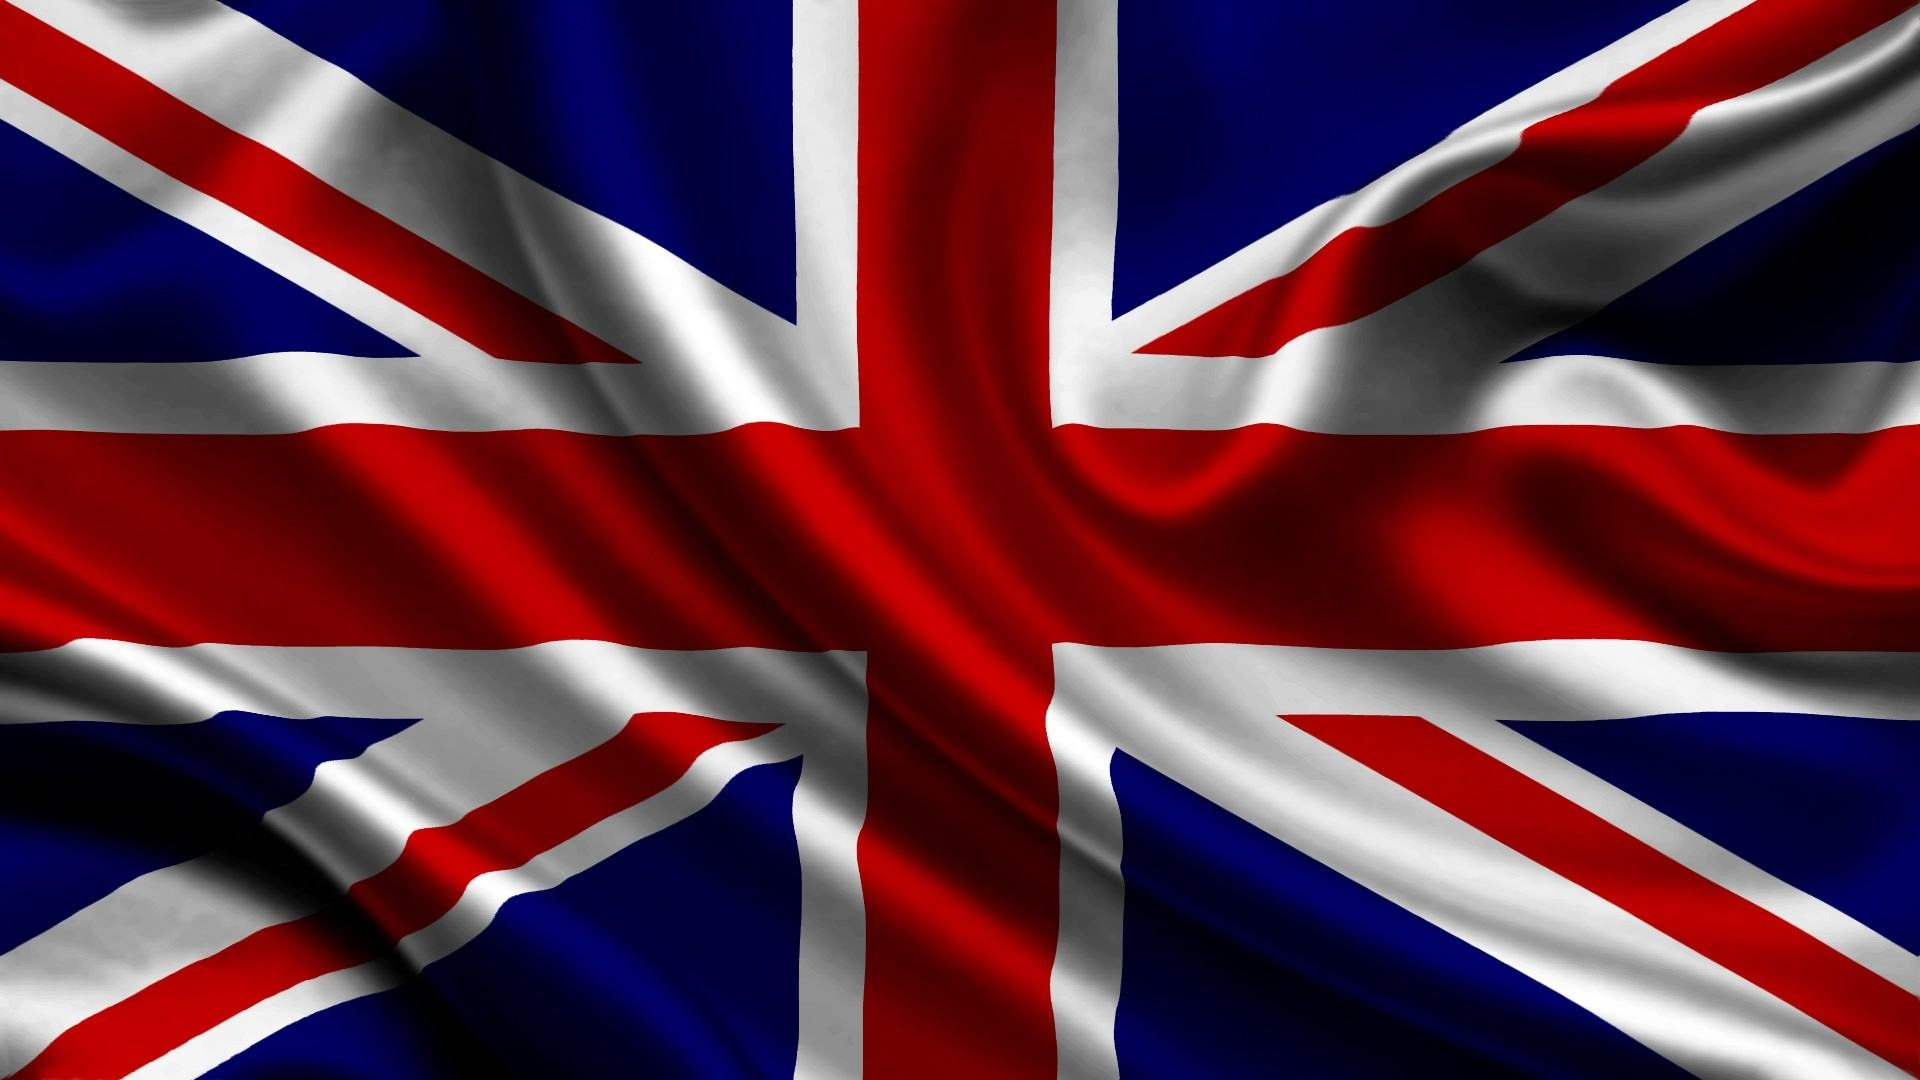 British Flag Wallpaper HD Wallpapers amp Backgrounds British 1920x1080